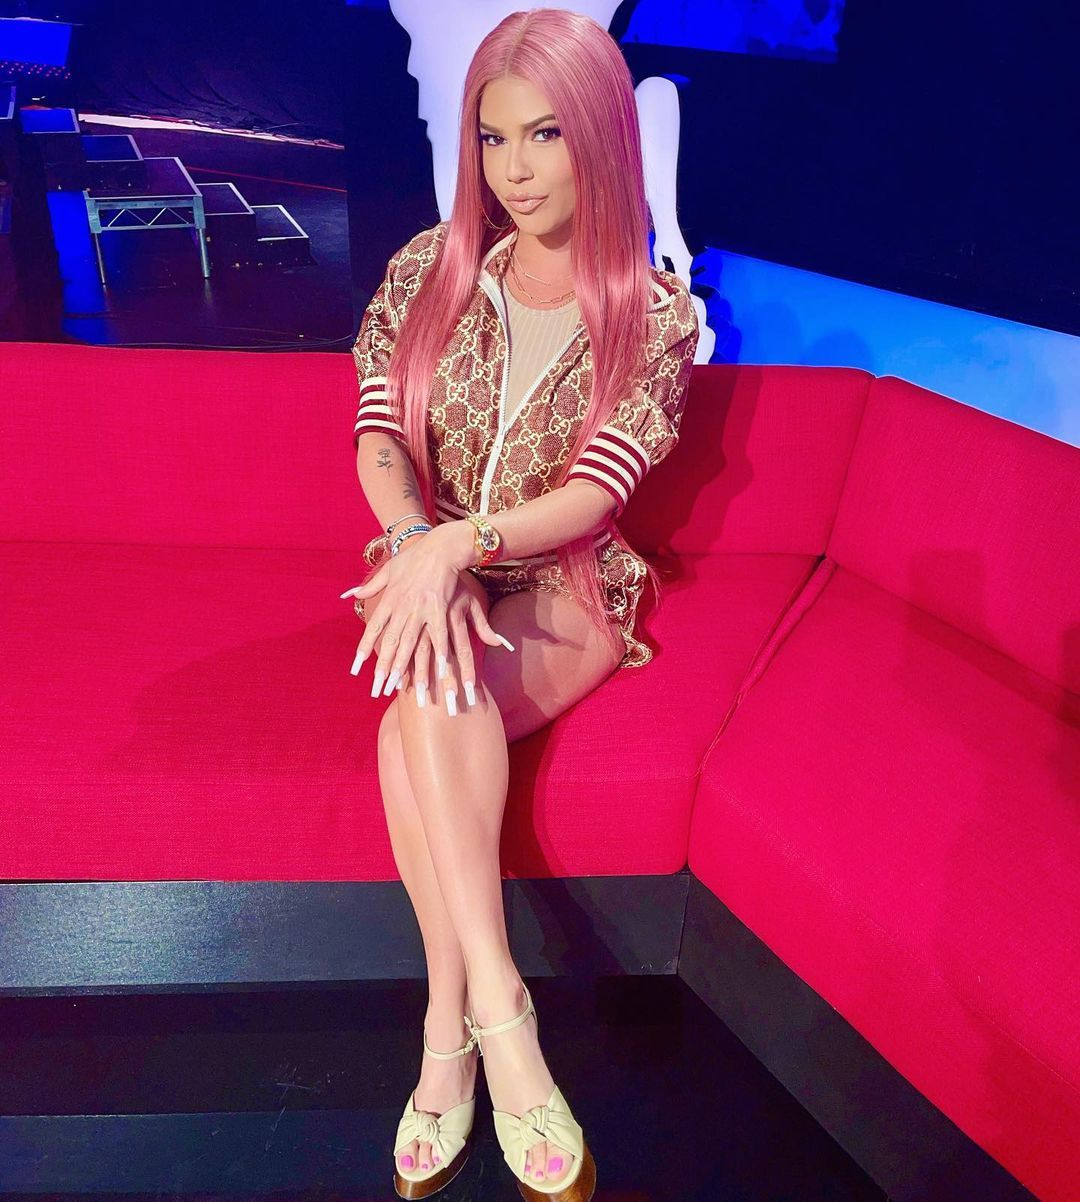 Chanel West Coast on set with pink hair